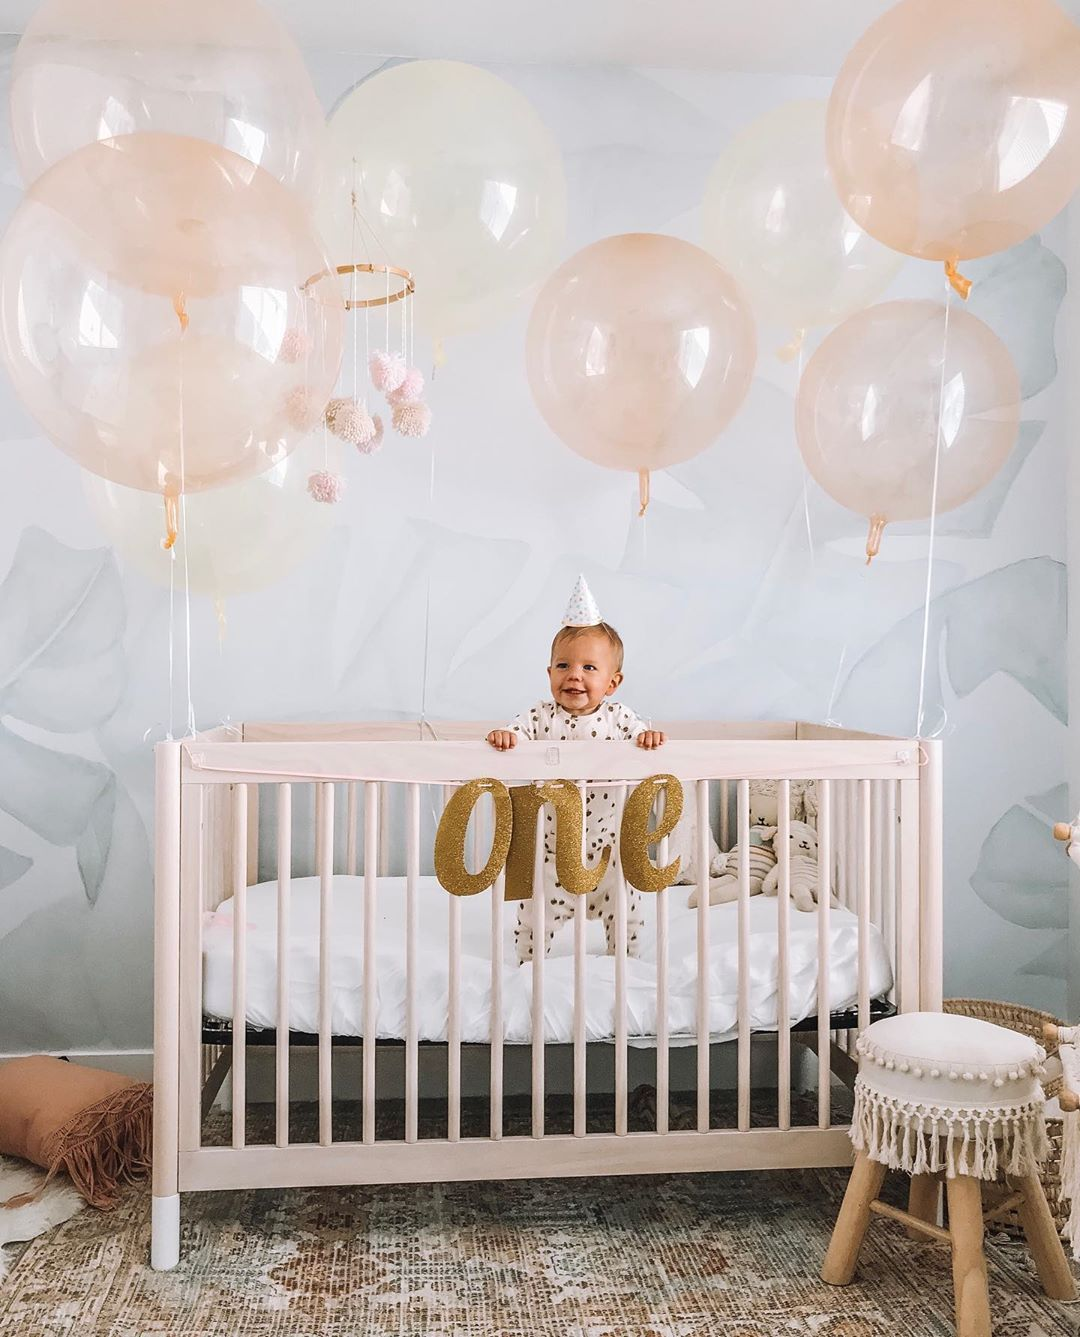 "KALEY MUNDAY || MOTHERHOOD on Instagram: ""You exude light and love and the last year with you has been magical. Happy 1st birthday Indy girl. I know your little soul is gonna…"""